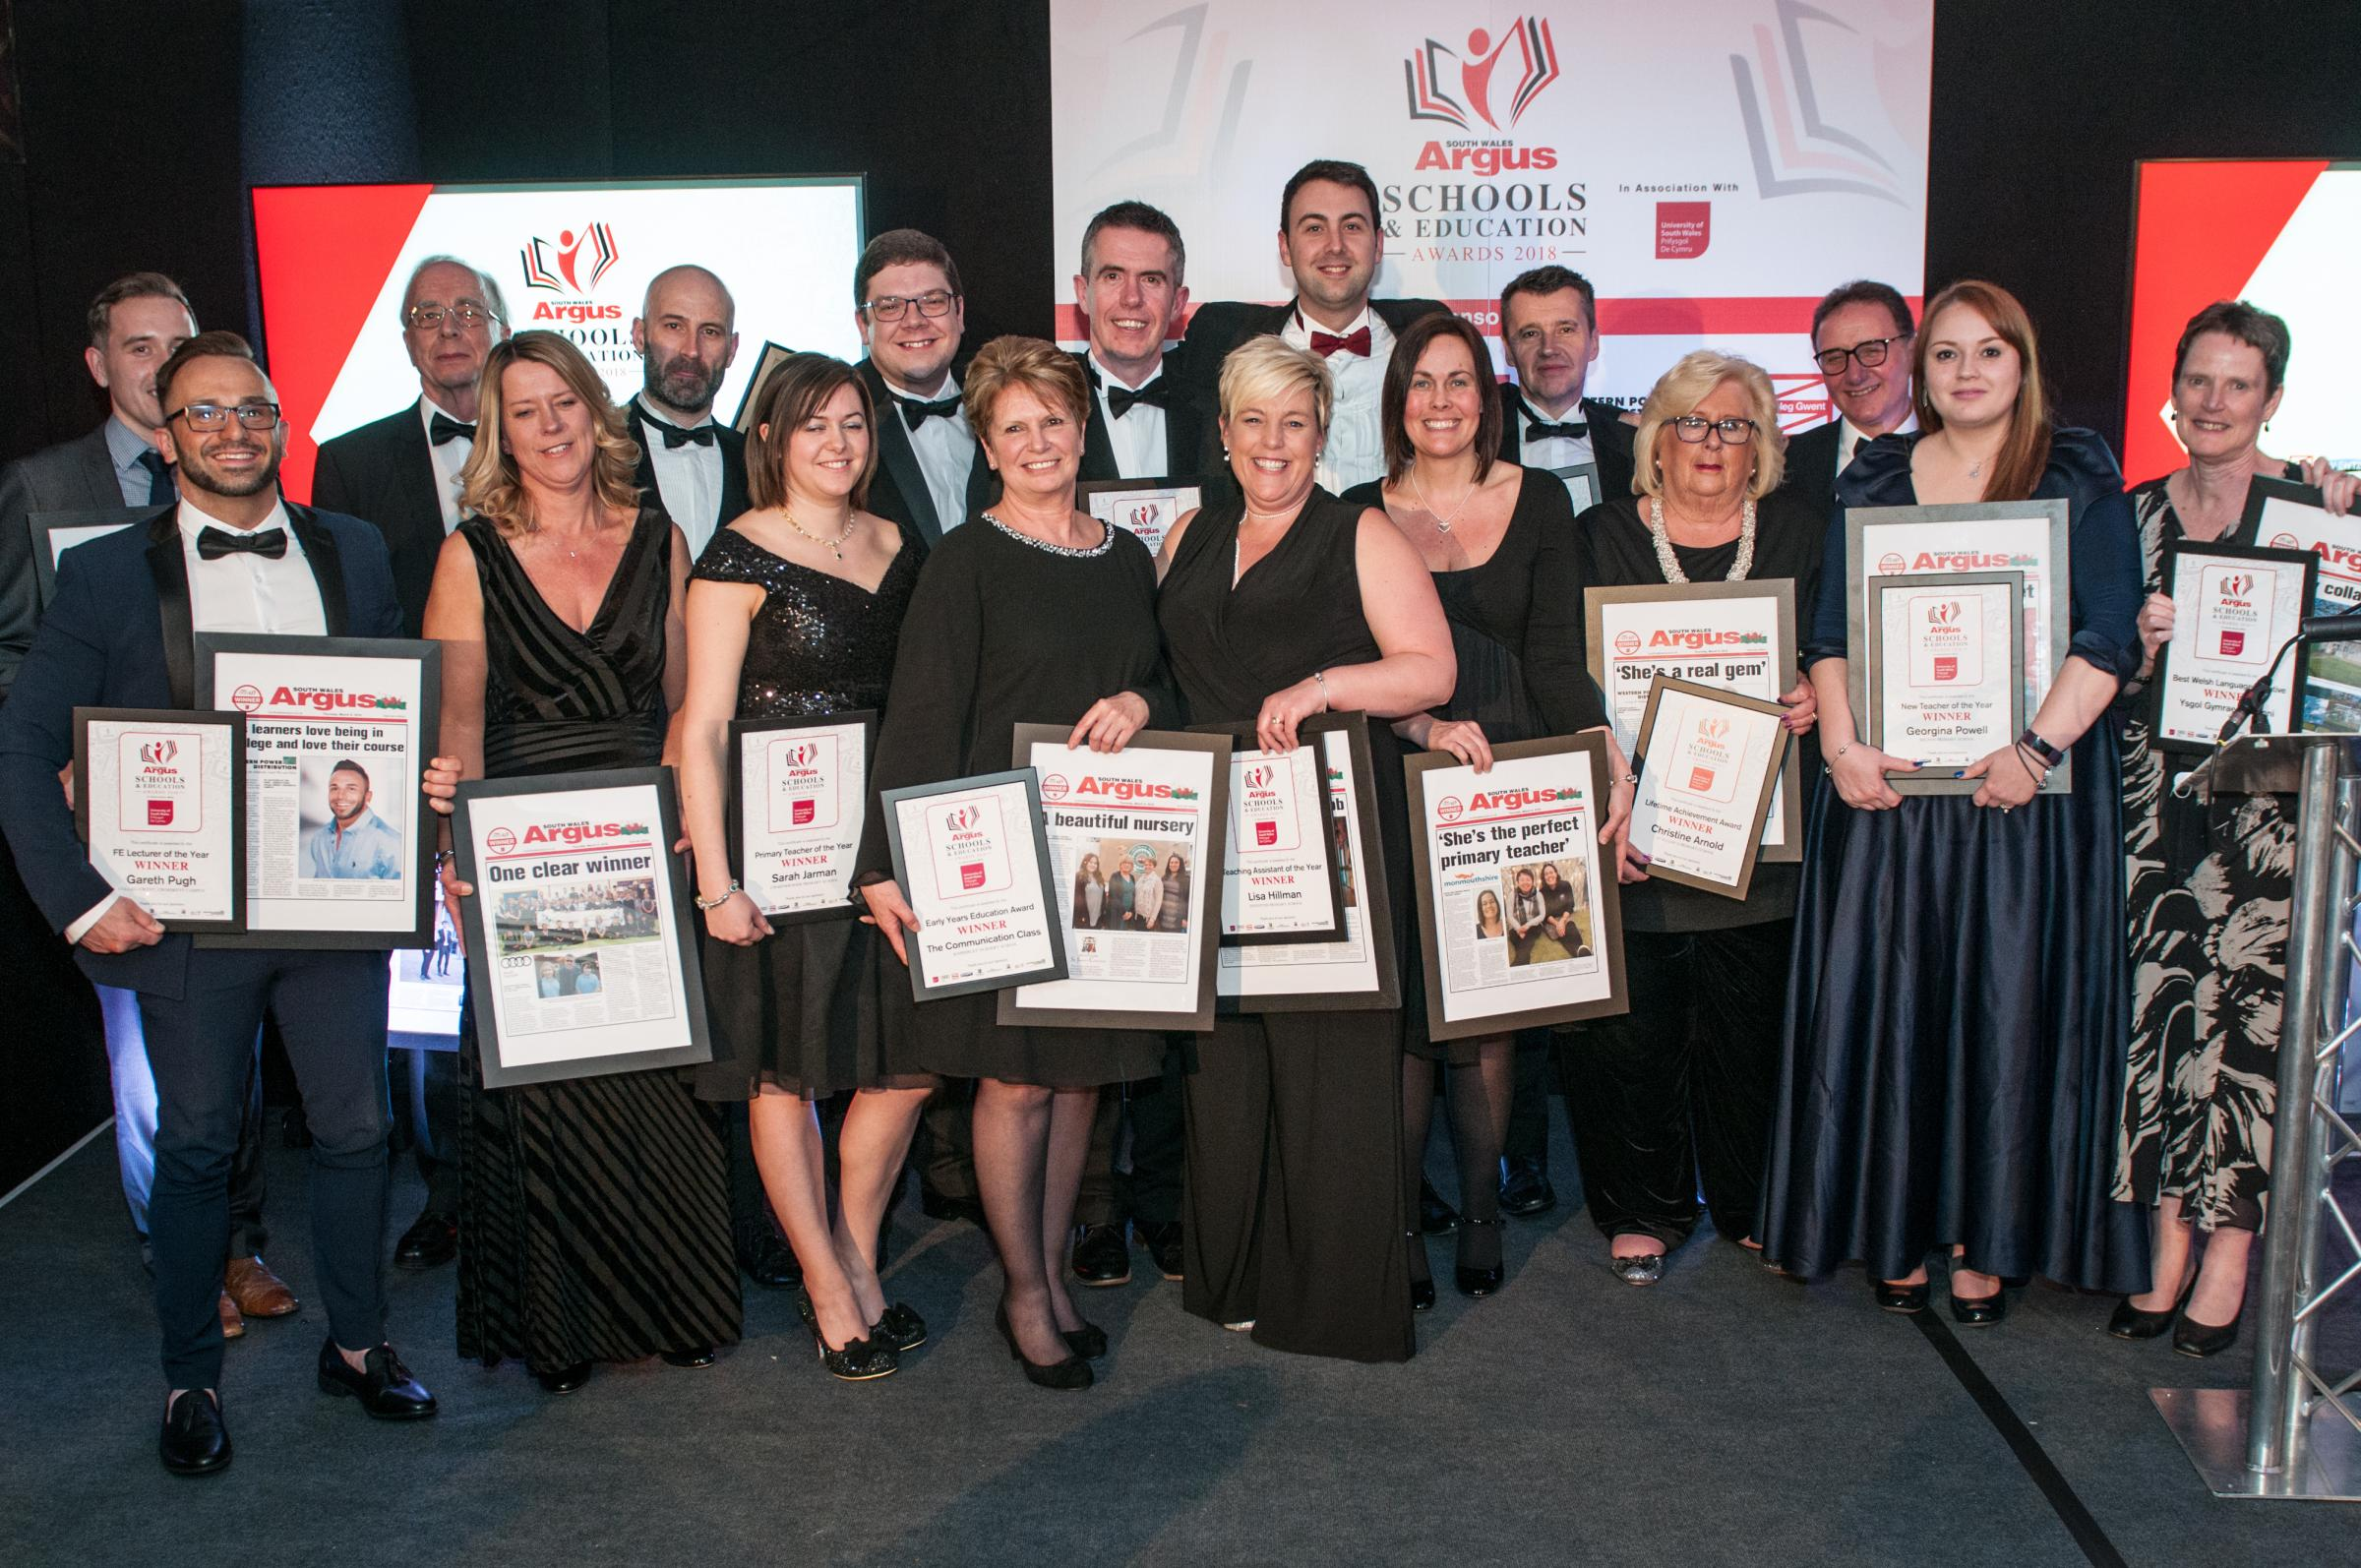 Winners of the South Wales Argus Schools and Education Awards 2018